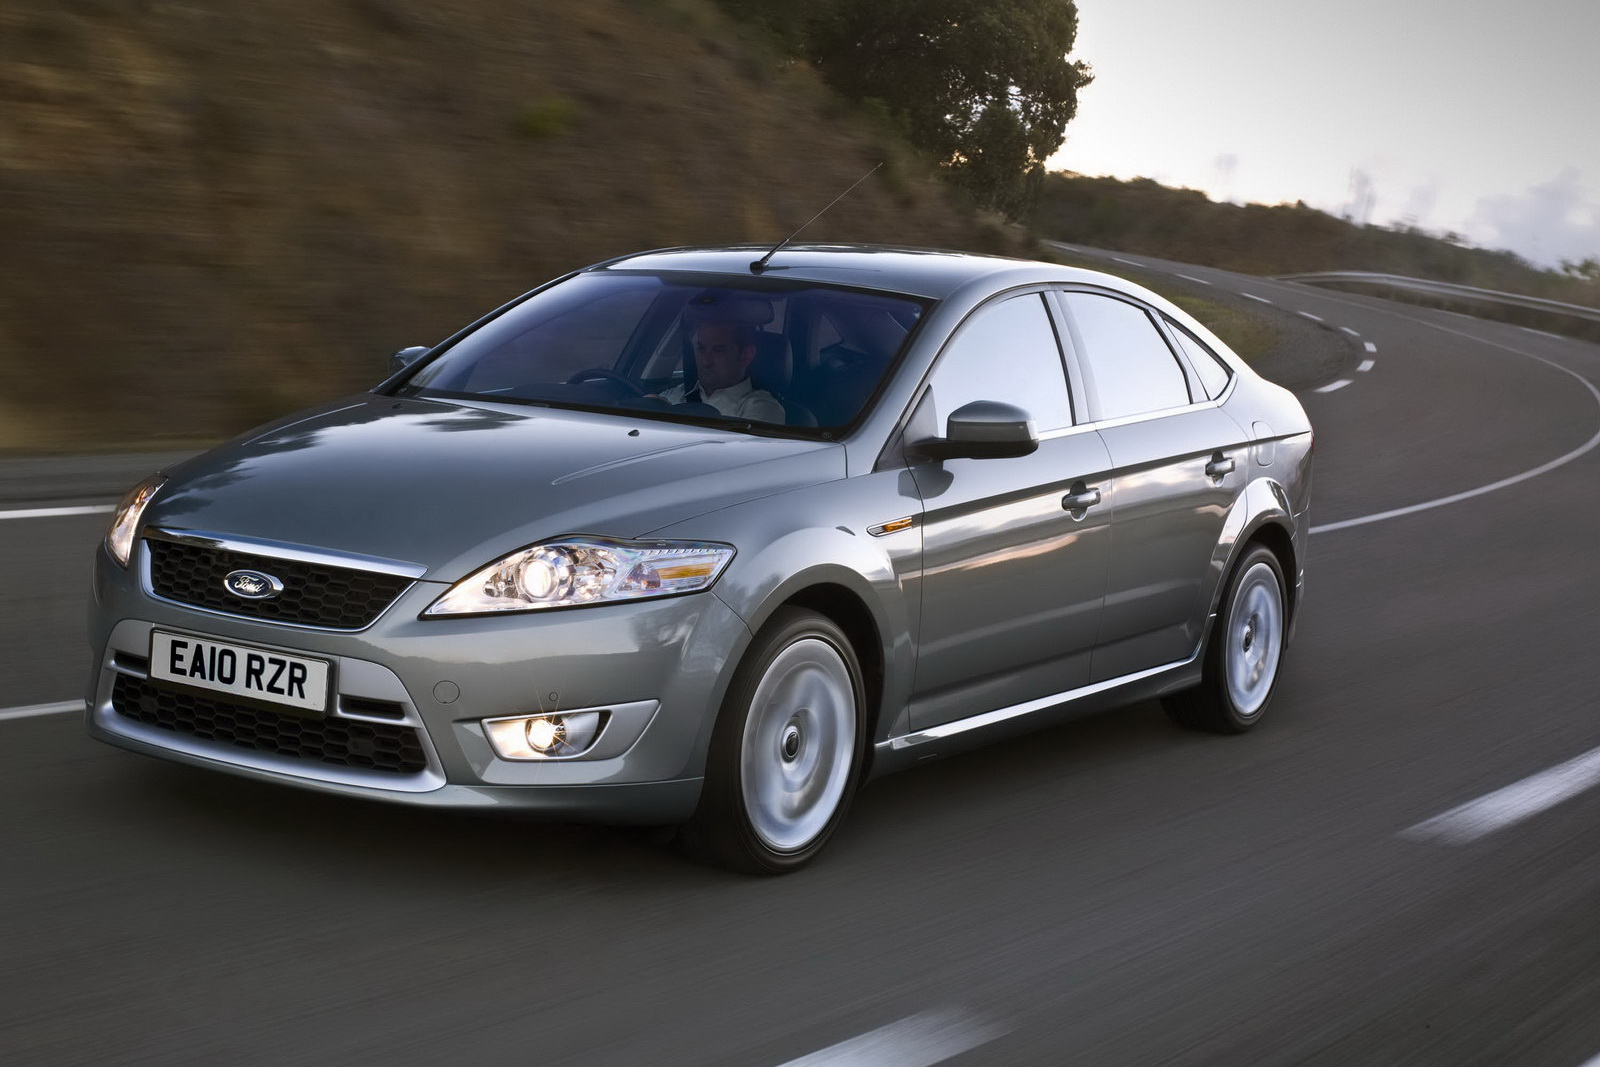 ford uk prices mondeo with the new turbo gasoline and diesel engines. Black Bedroom Furniture Sets. Home Design Ideas